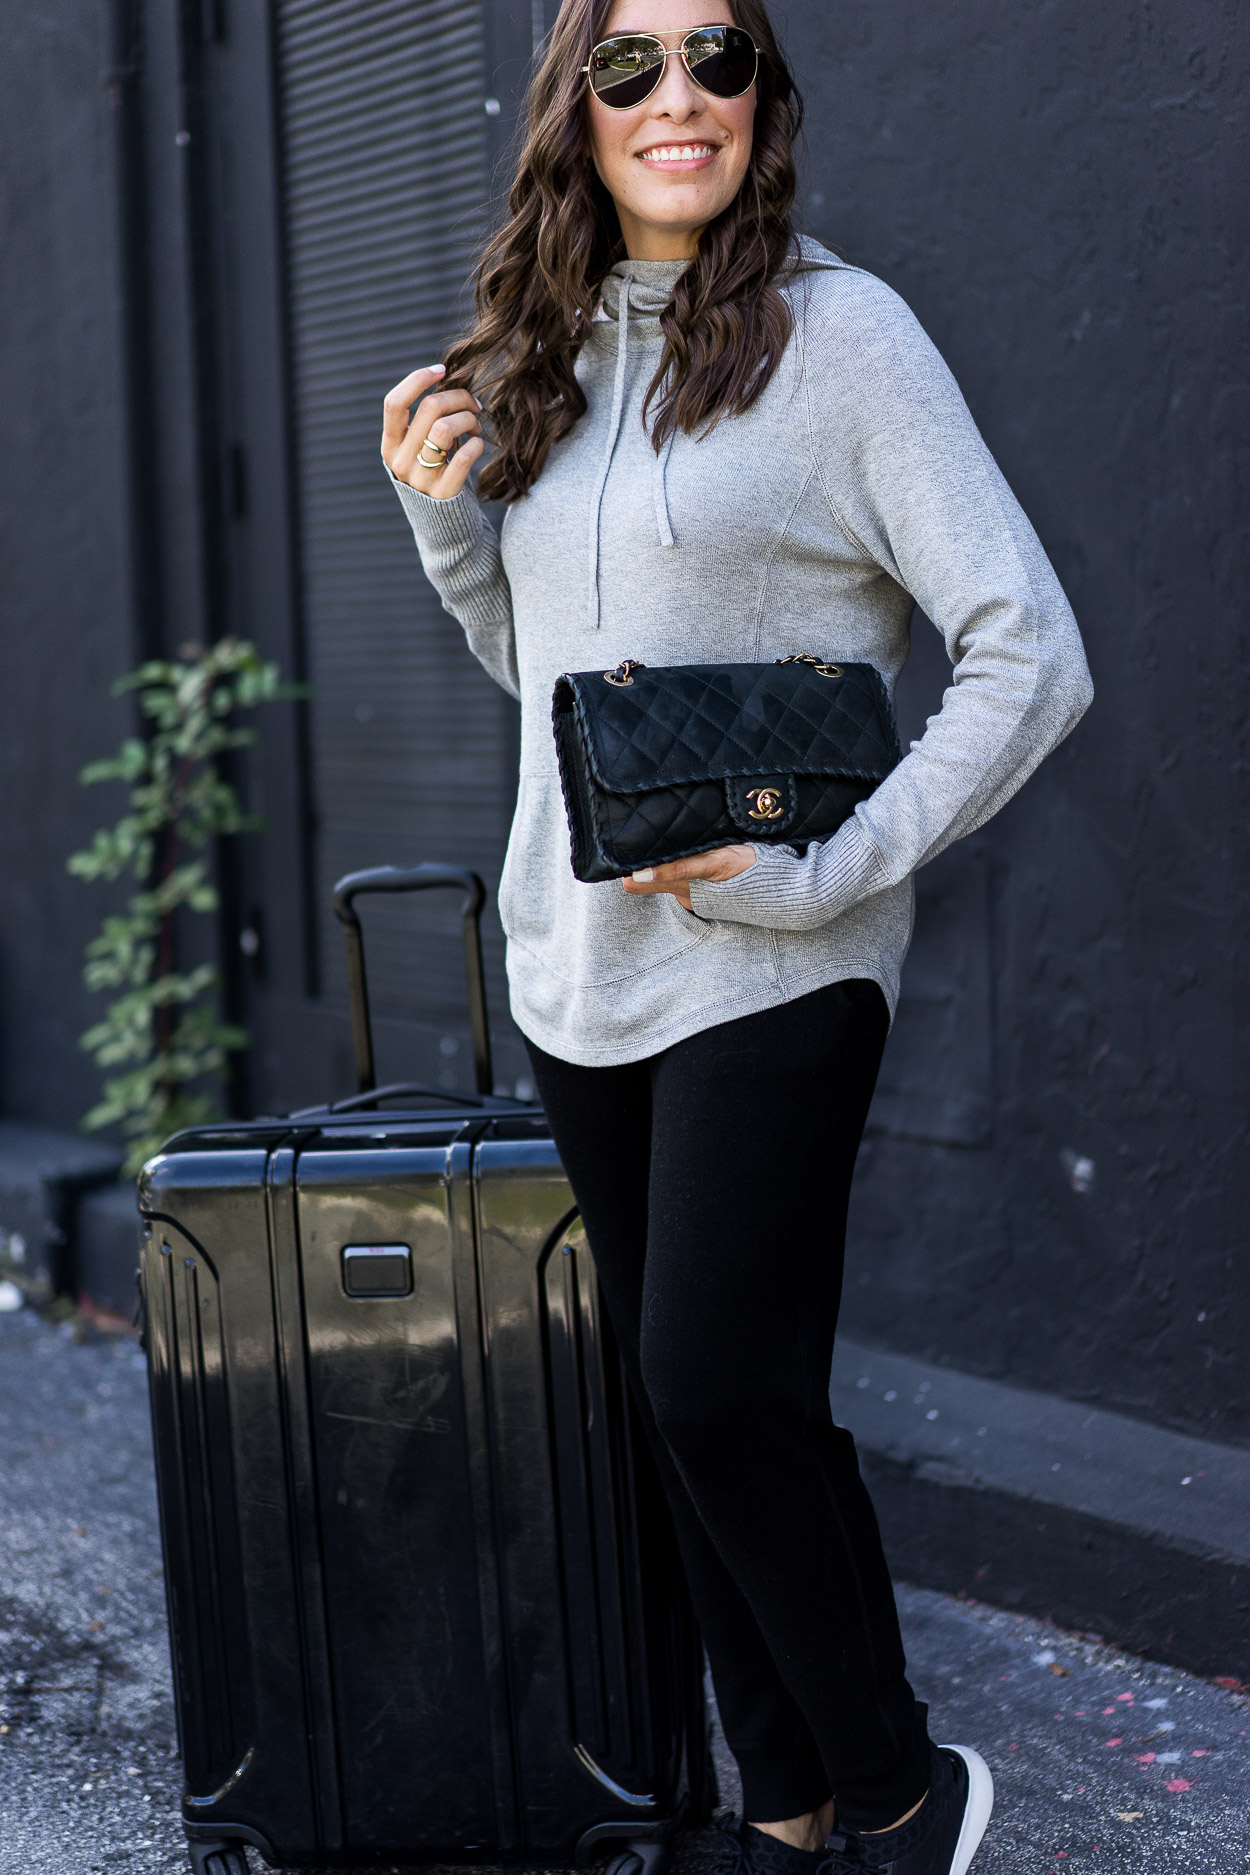 Travel in style in Leimere cashmere joggers and hoodie like blogger Amanda of A Glam Lifestyle